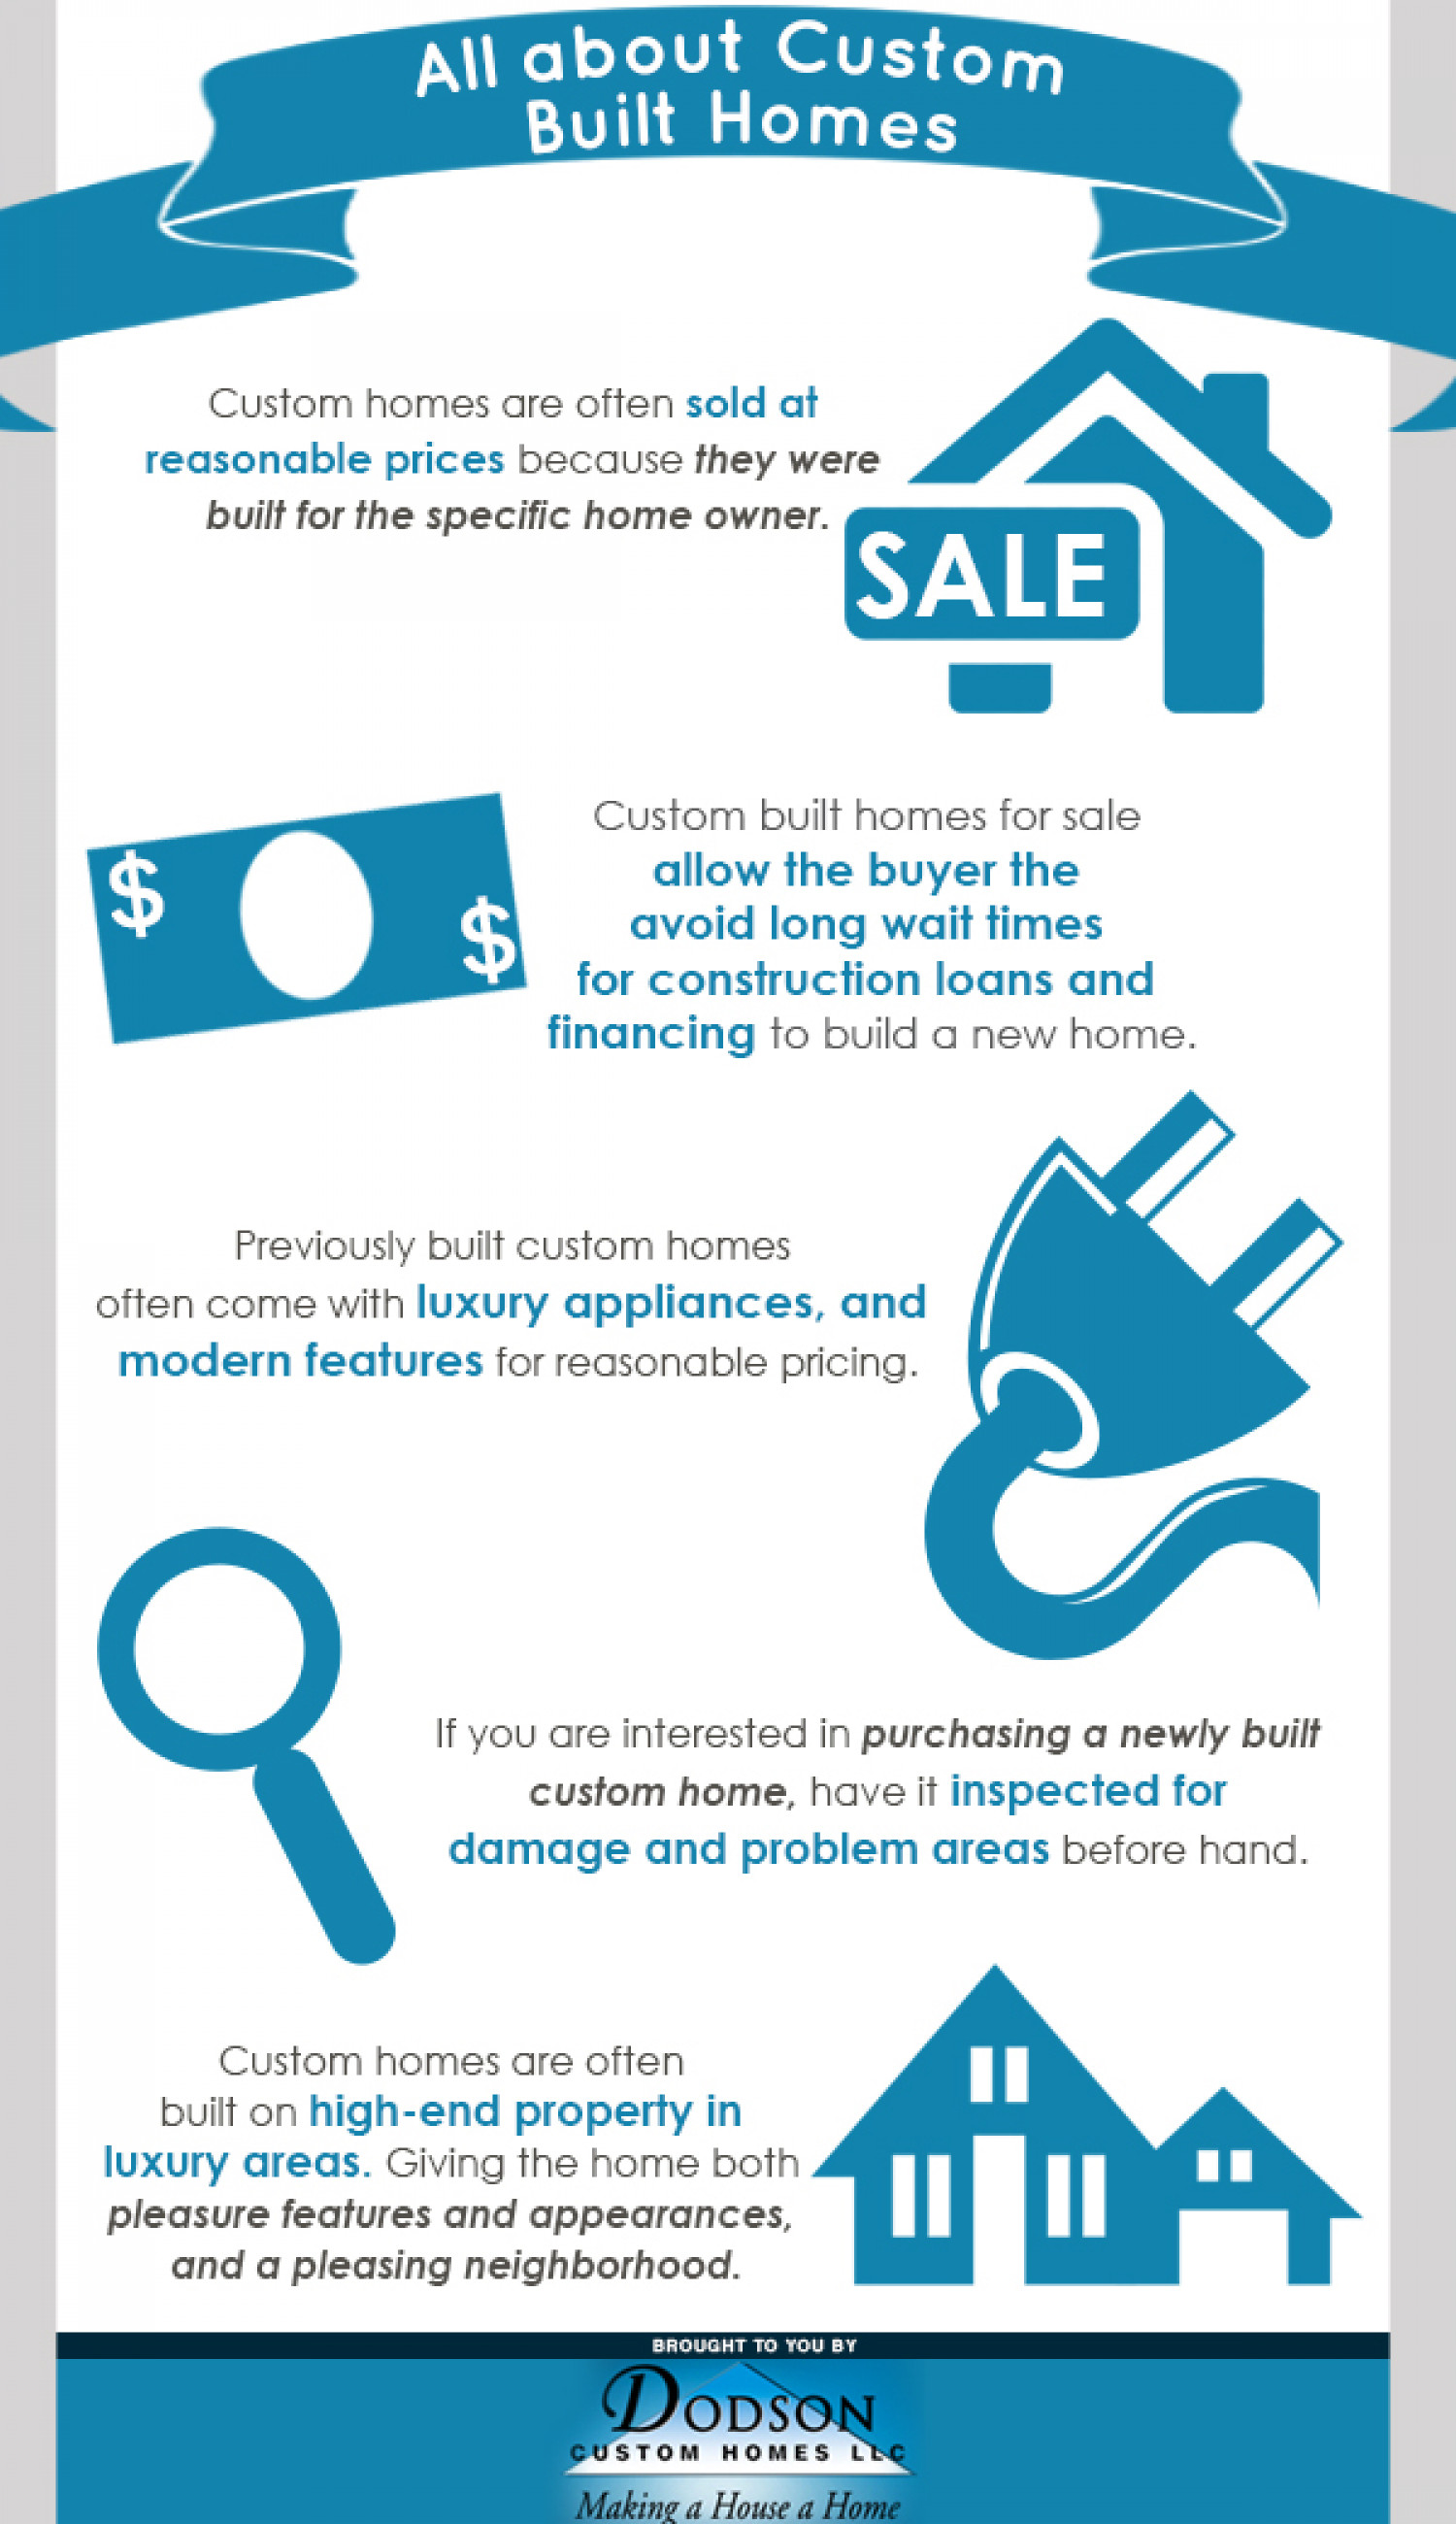 All About Custom Built Homes Infographic